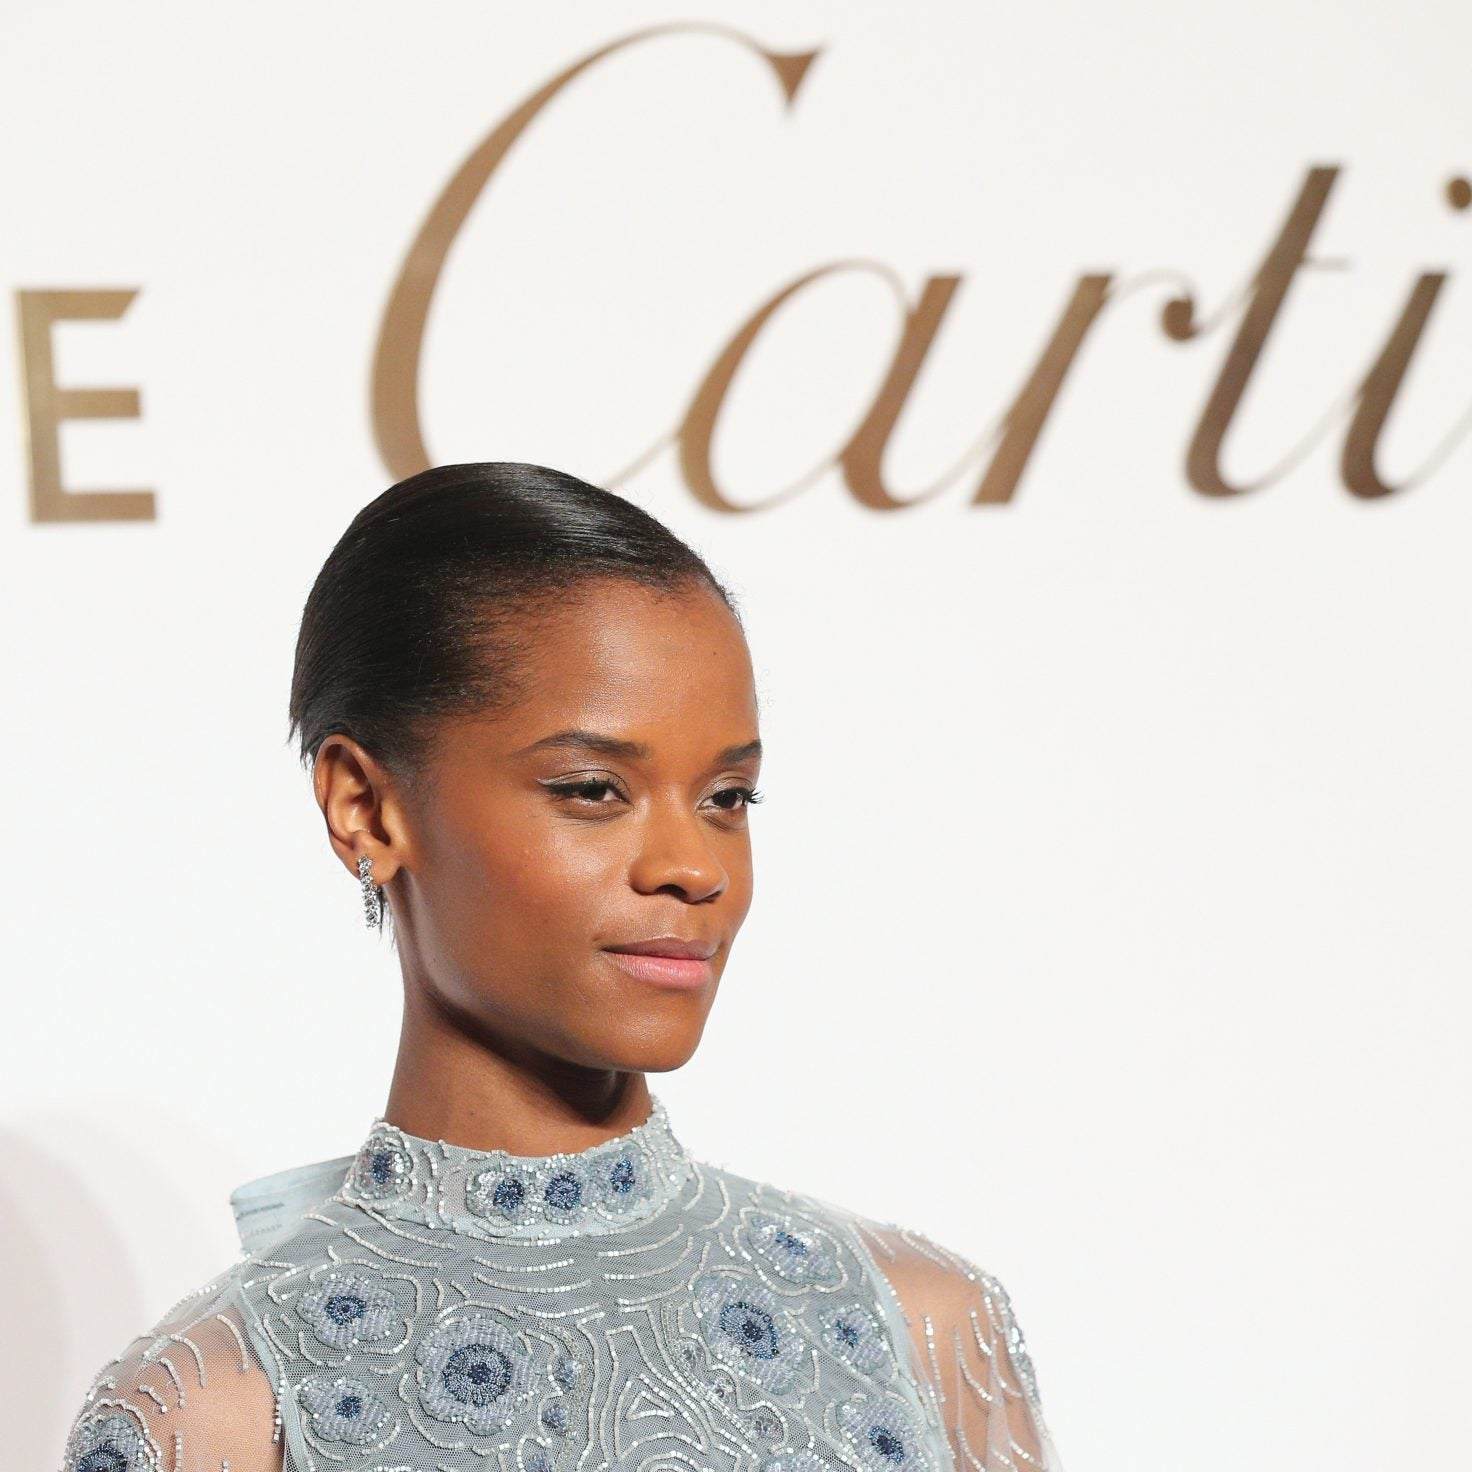 The Academy Adds Letitia Wright, Sterling K. Brown Plus Hundreds of Women And People of Color Members